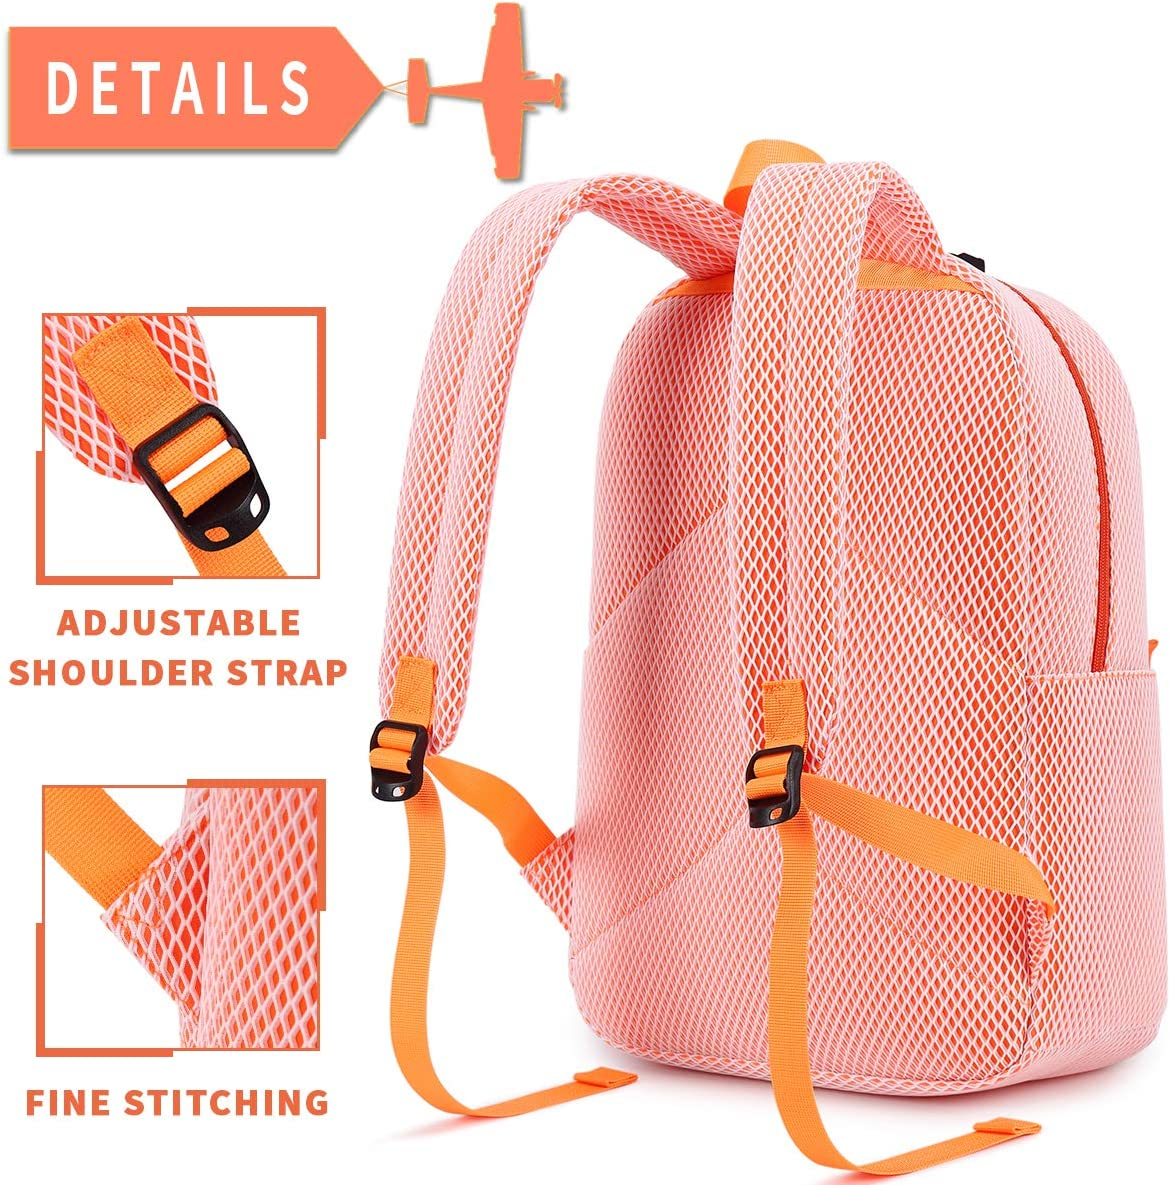 El-fmly Fashion Mesh Backpack for Travel Lightweight School Bookbag for Girls and Boys Yellow